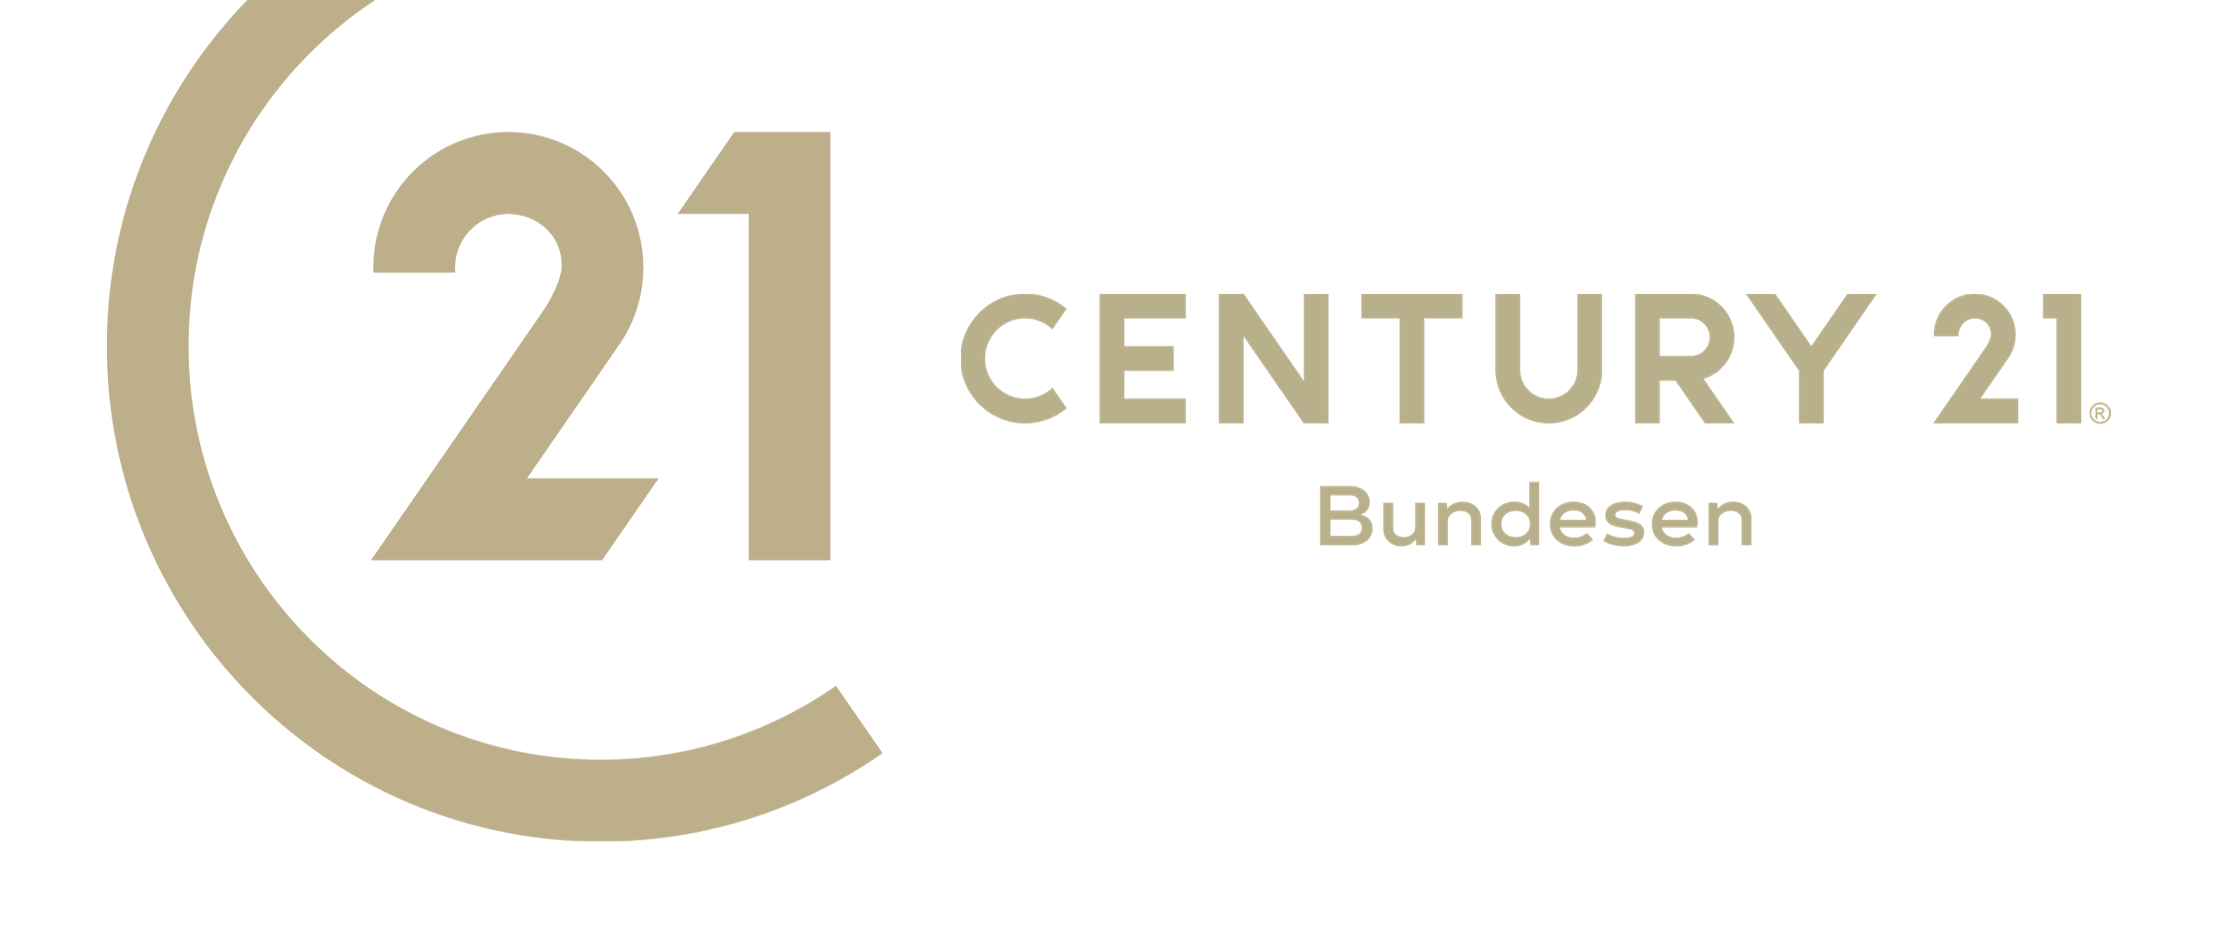 Century 21 Logo Png (108+ images in Collection) Page 2.